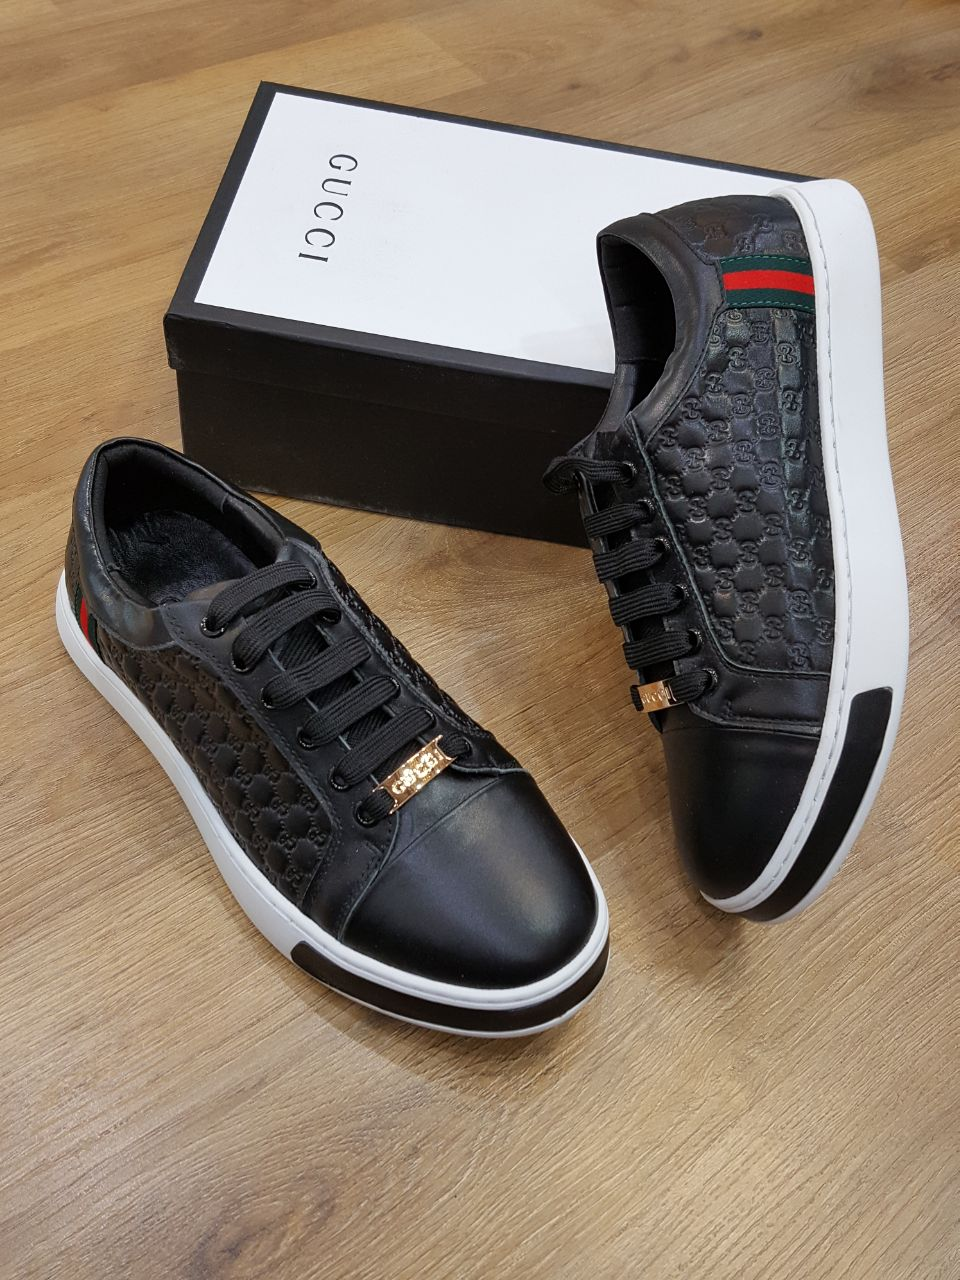 345f28724 Gucci Men Shoes Black Color